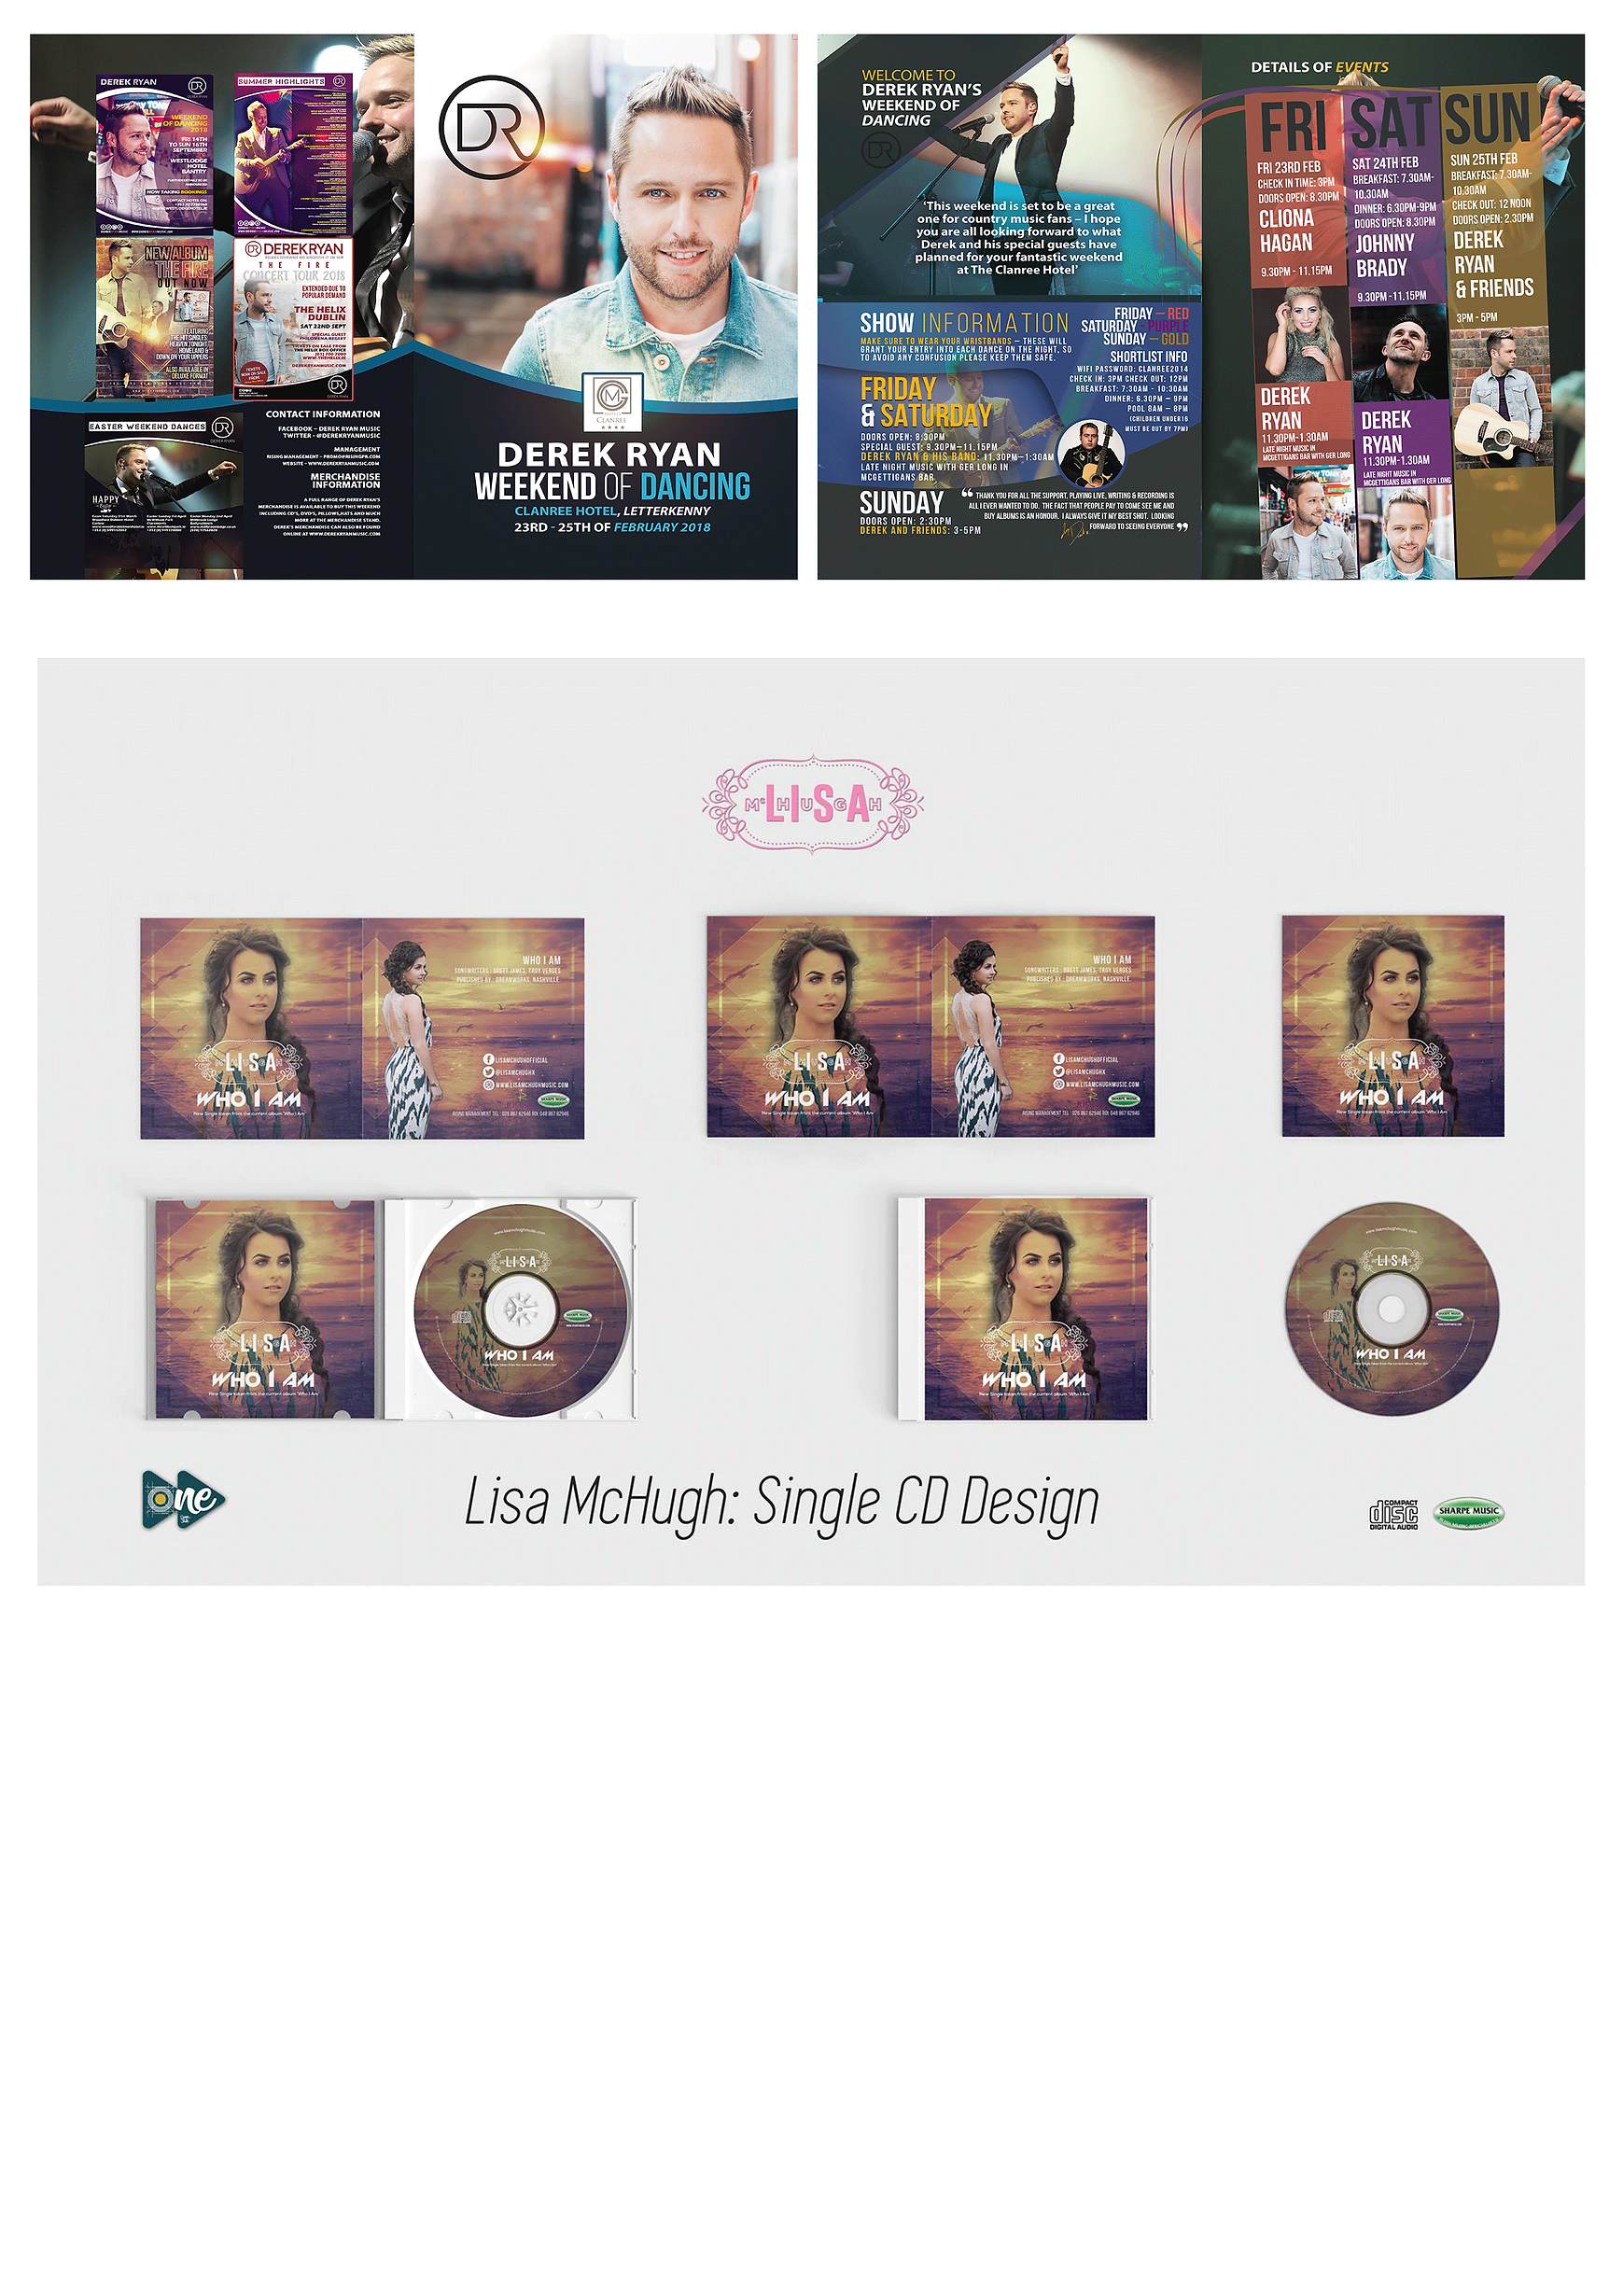 Graphic-design-cd-design-single.png